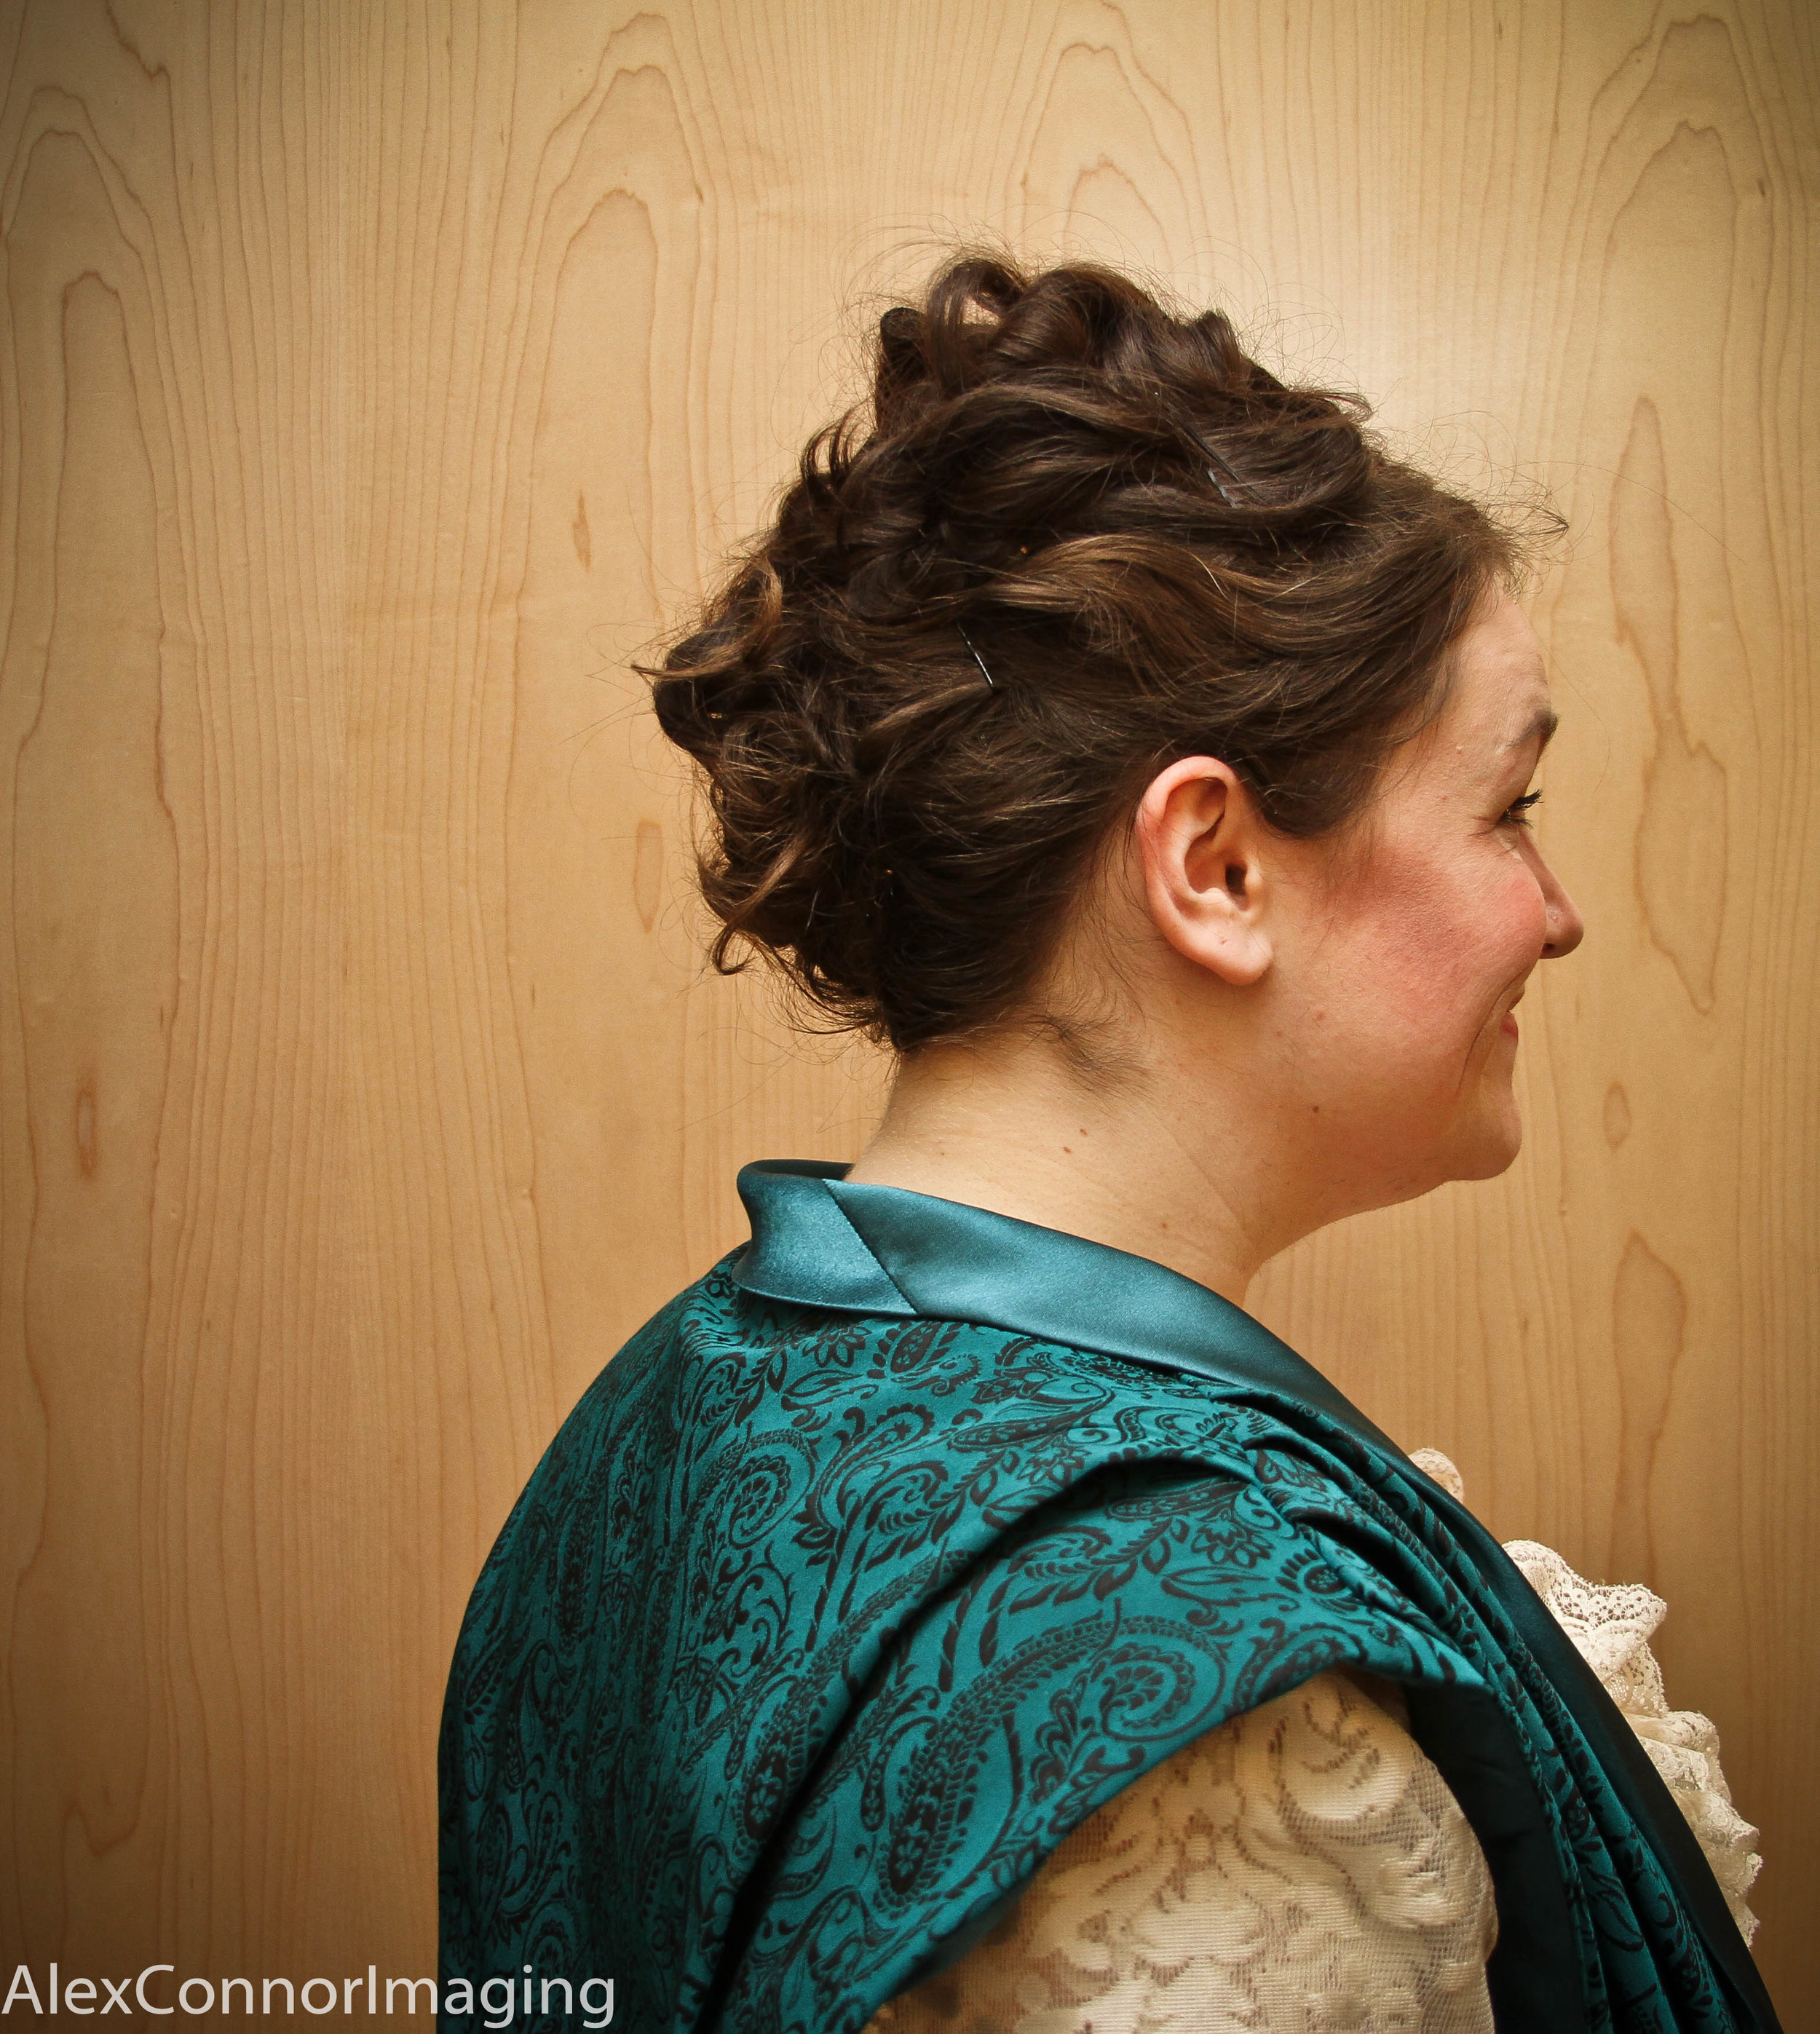 Catherine Petkoff- Act II completed hair